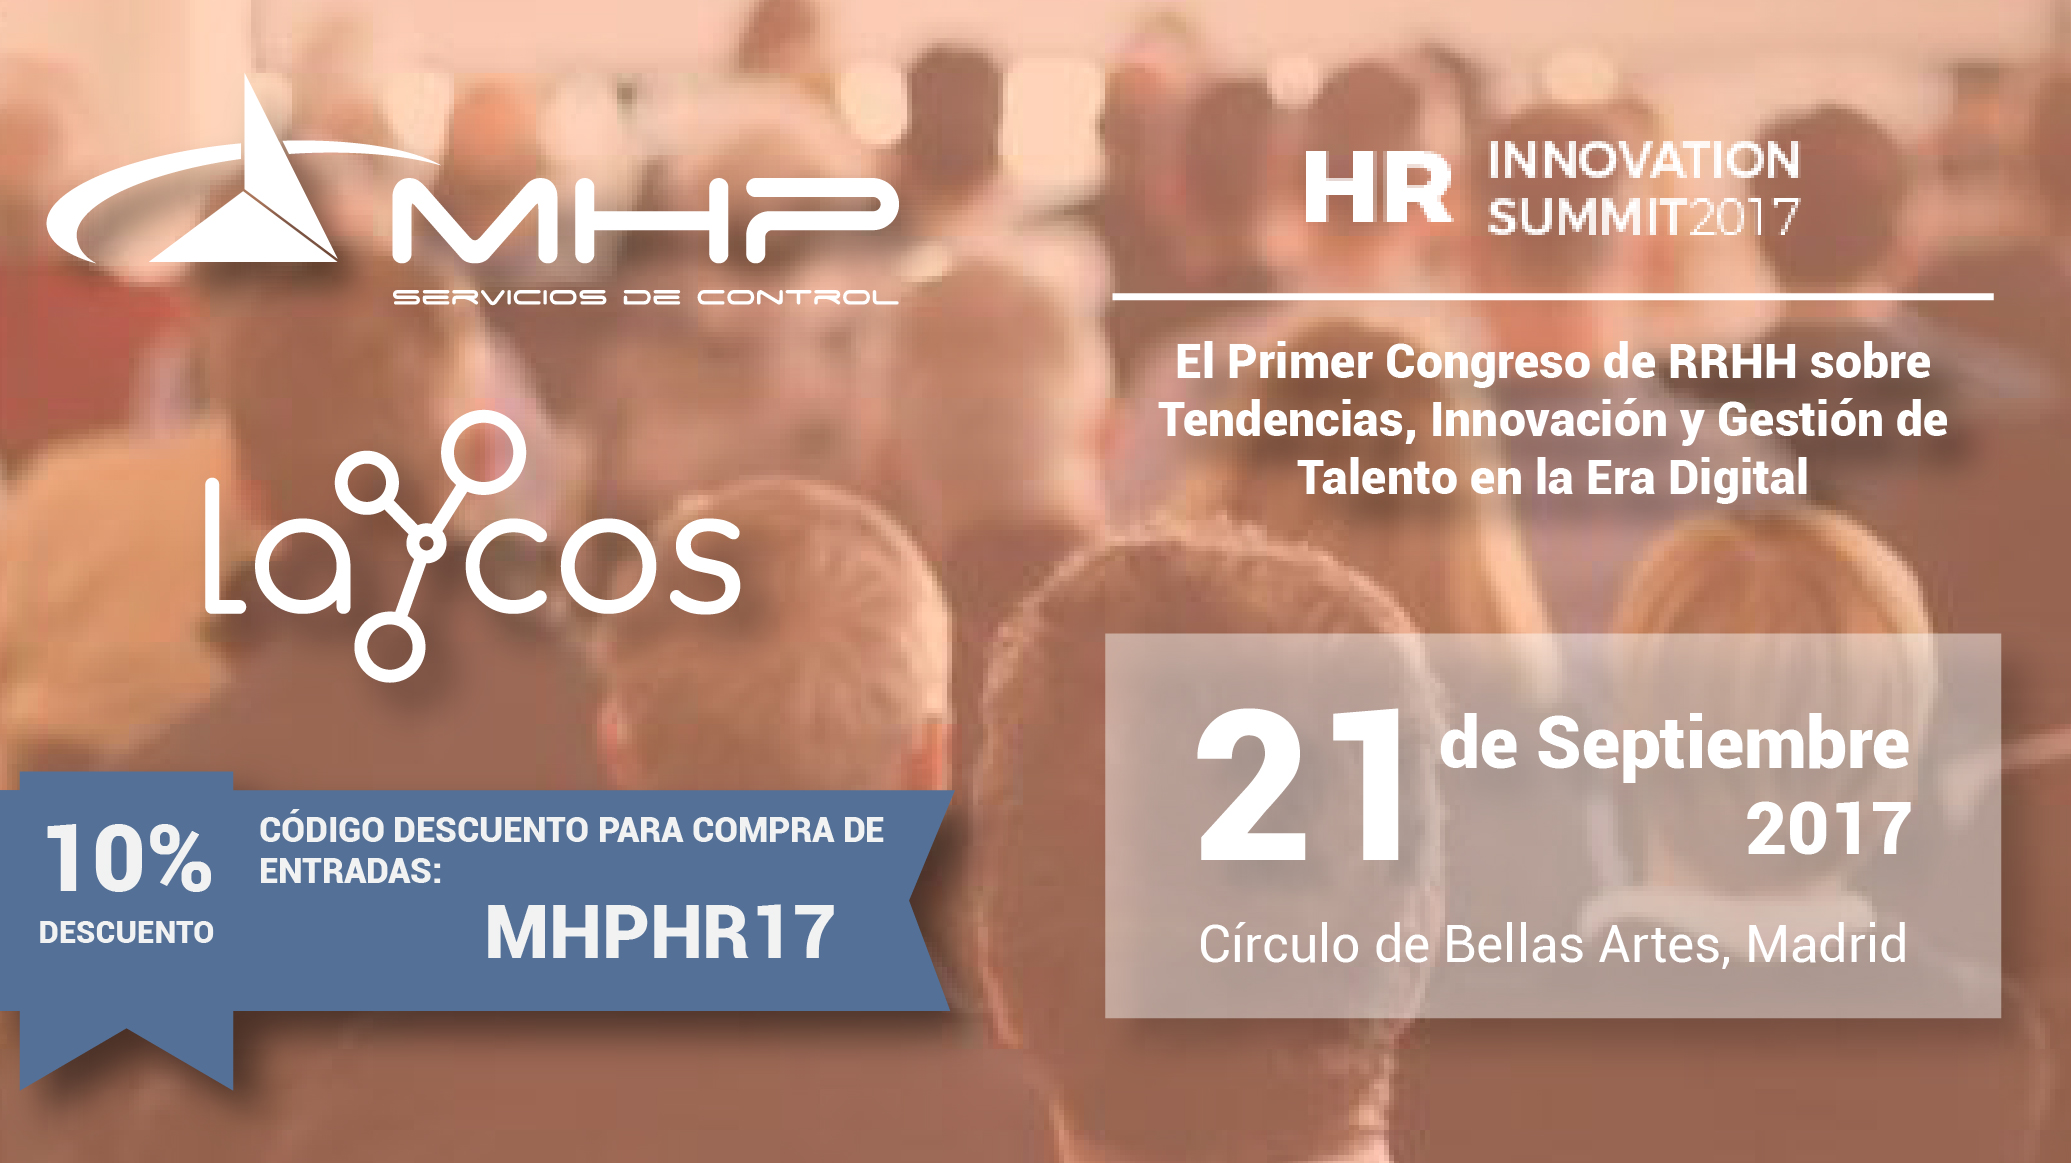 HRInnovation2017-descuento